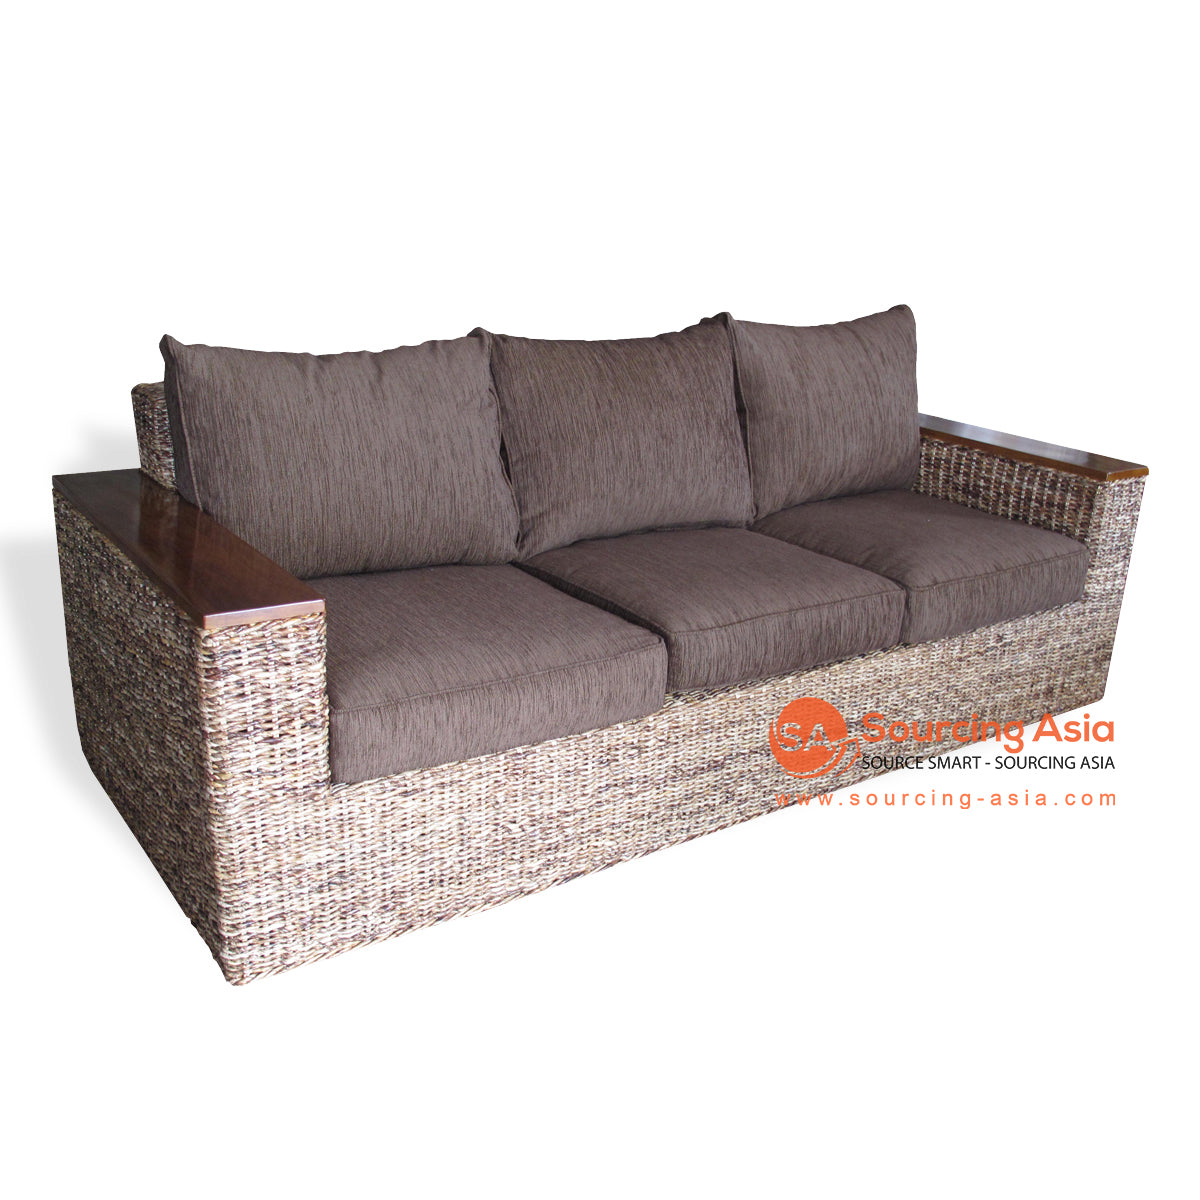 SF32-NAT 3 SEATS SOFA WITH WOODEN ARMS